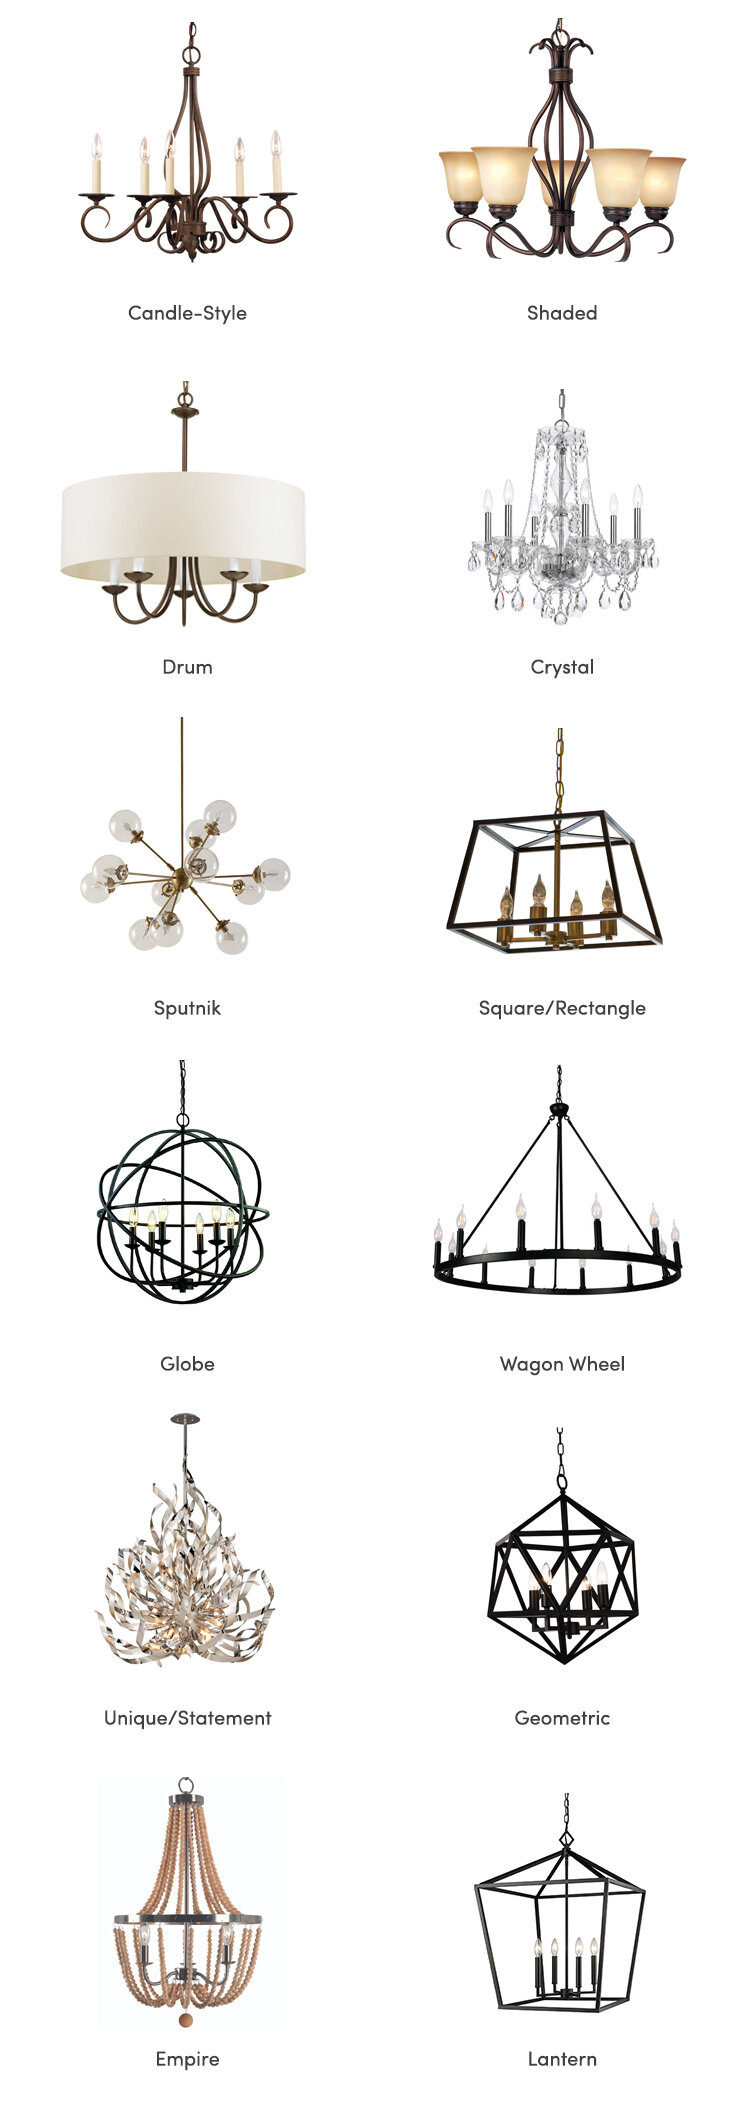 Types of decorative chandeliers